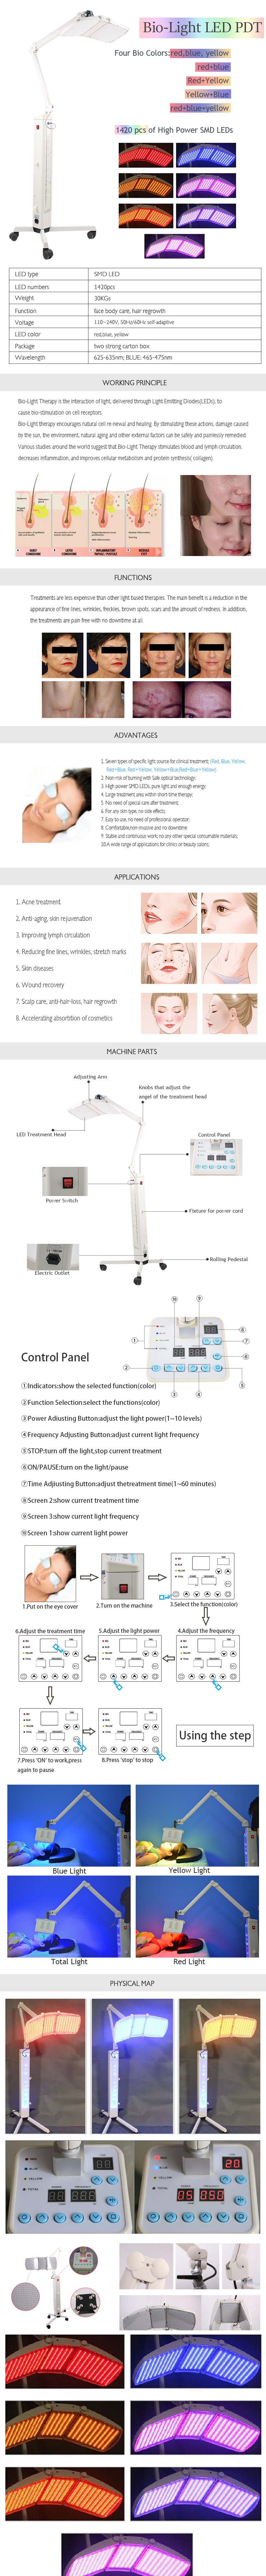 KMS020 LED Light Therapy Machine with 7 light colors product details